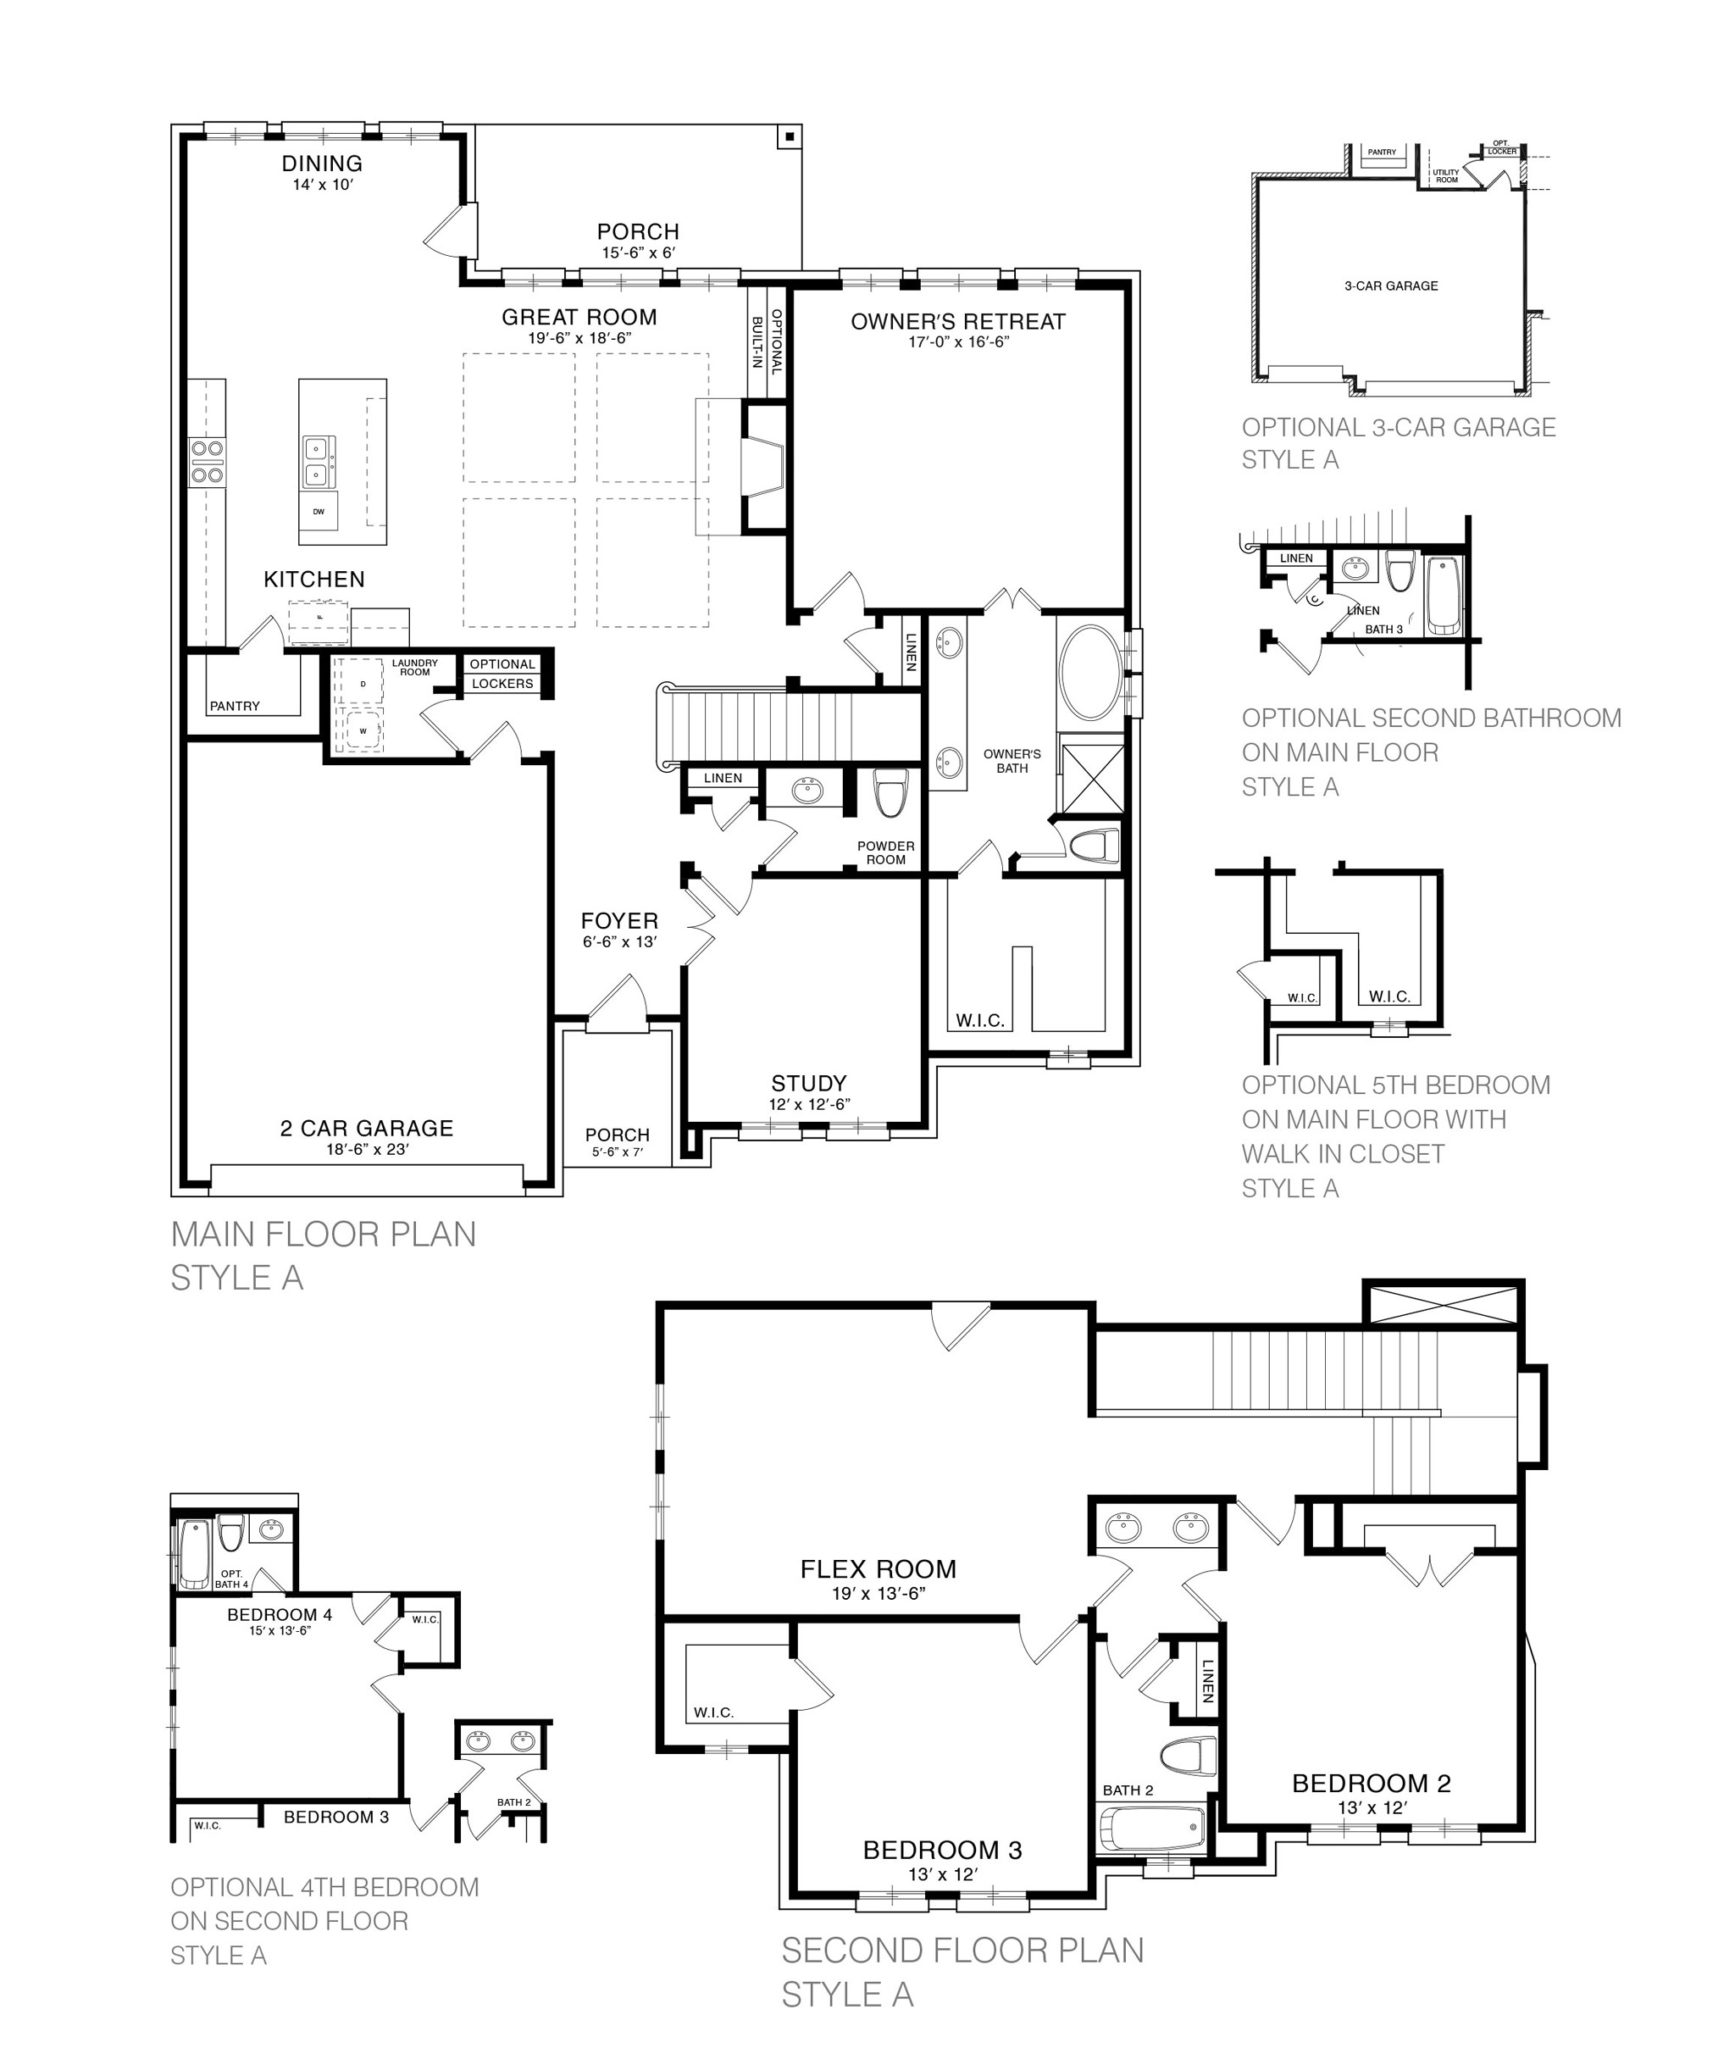 Clydesdale-CLYDESDALE-FLOORPLAN